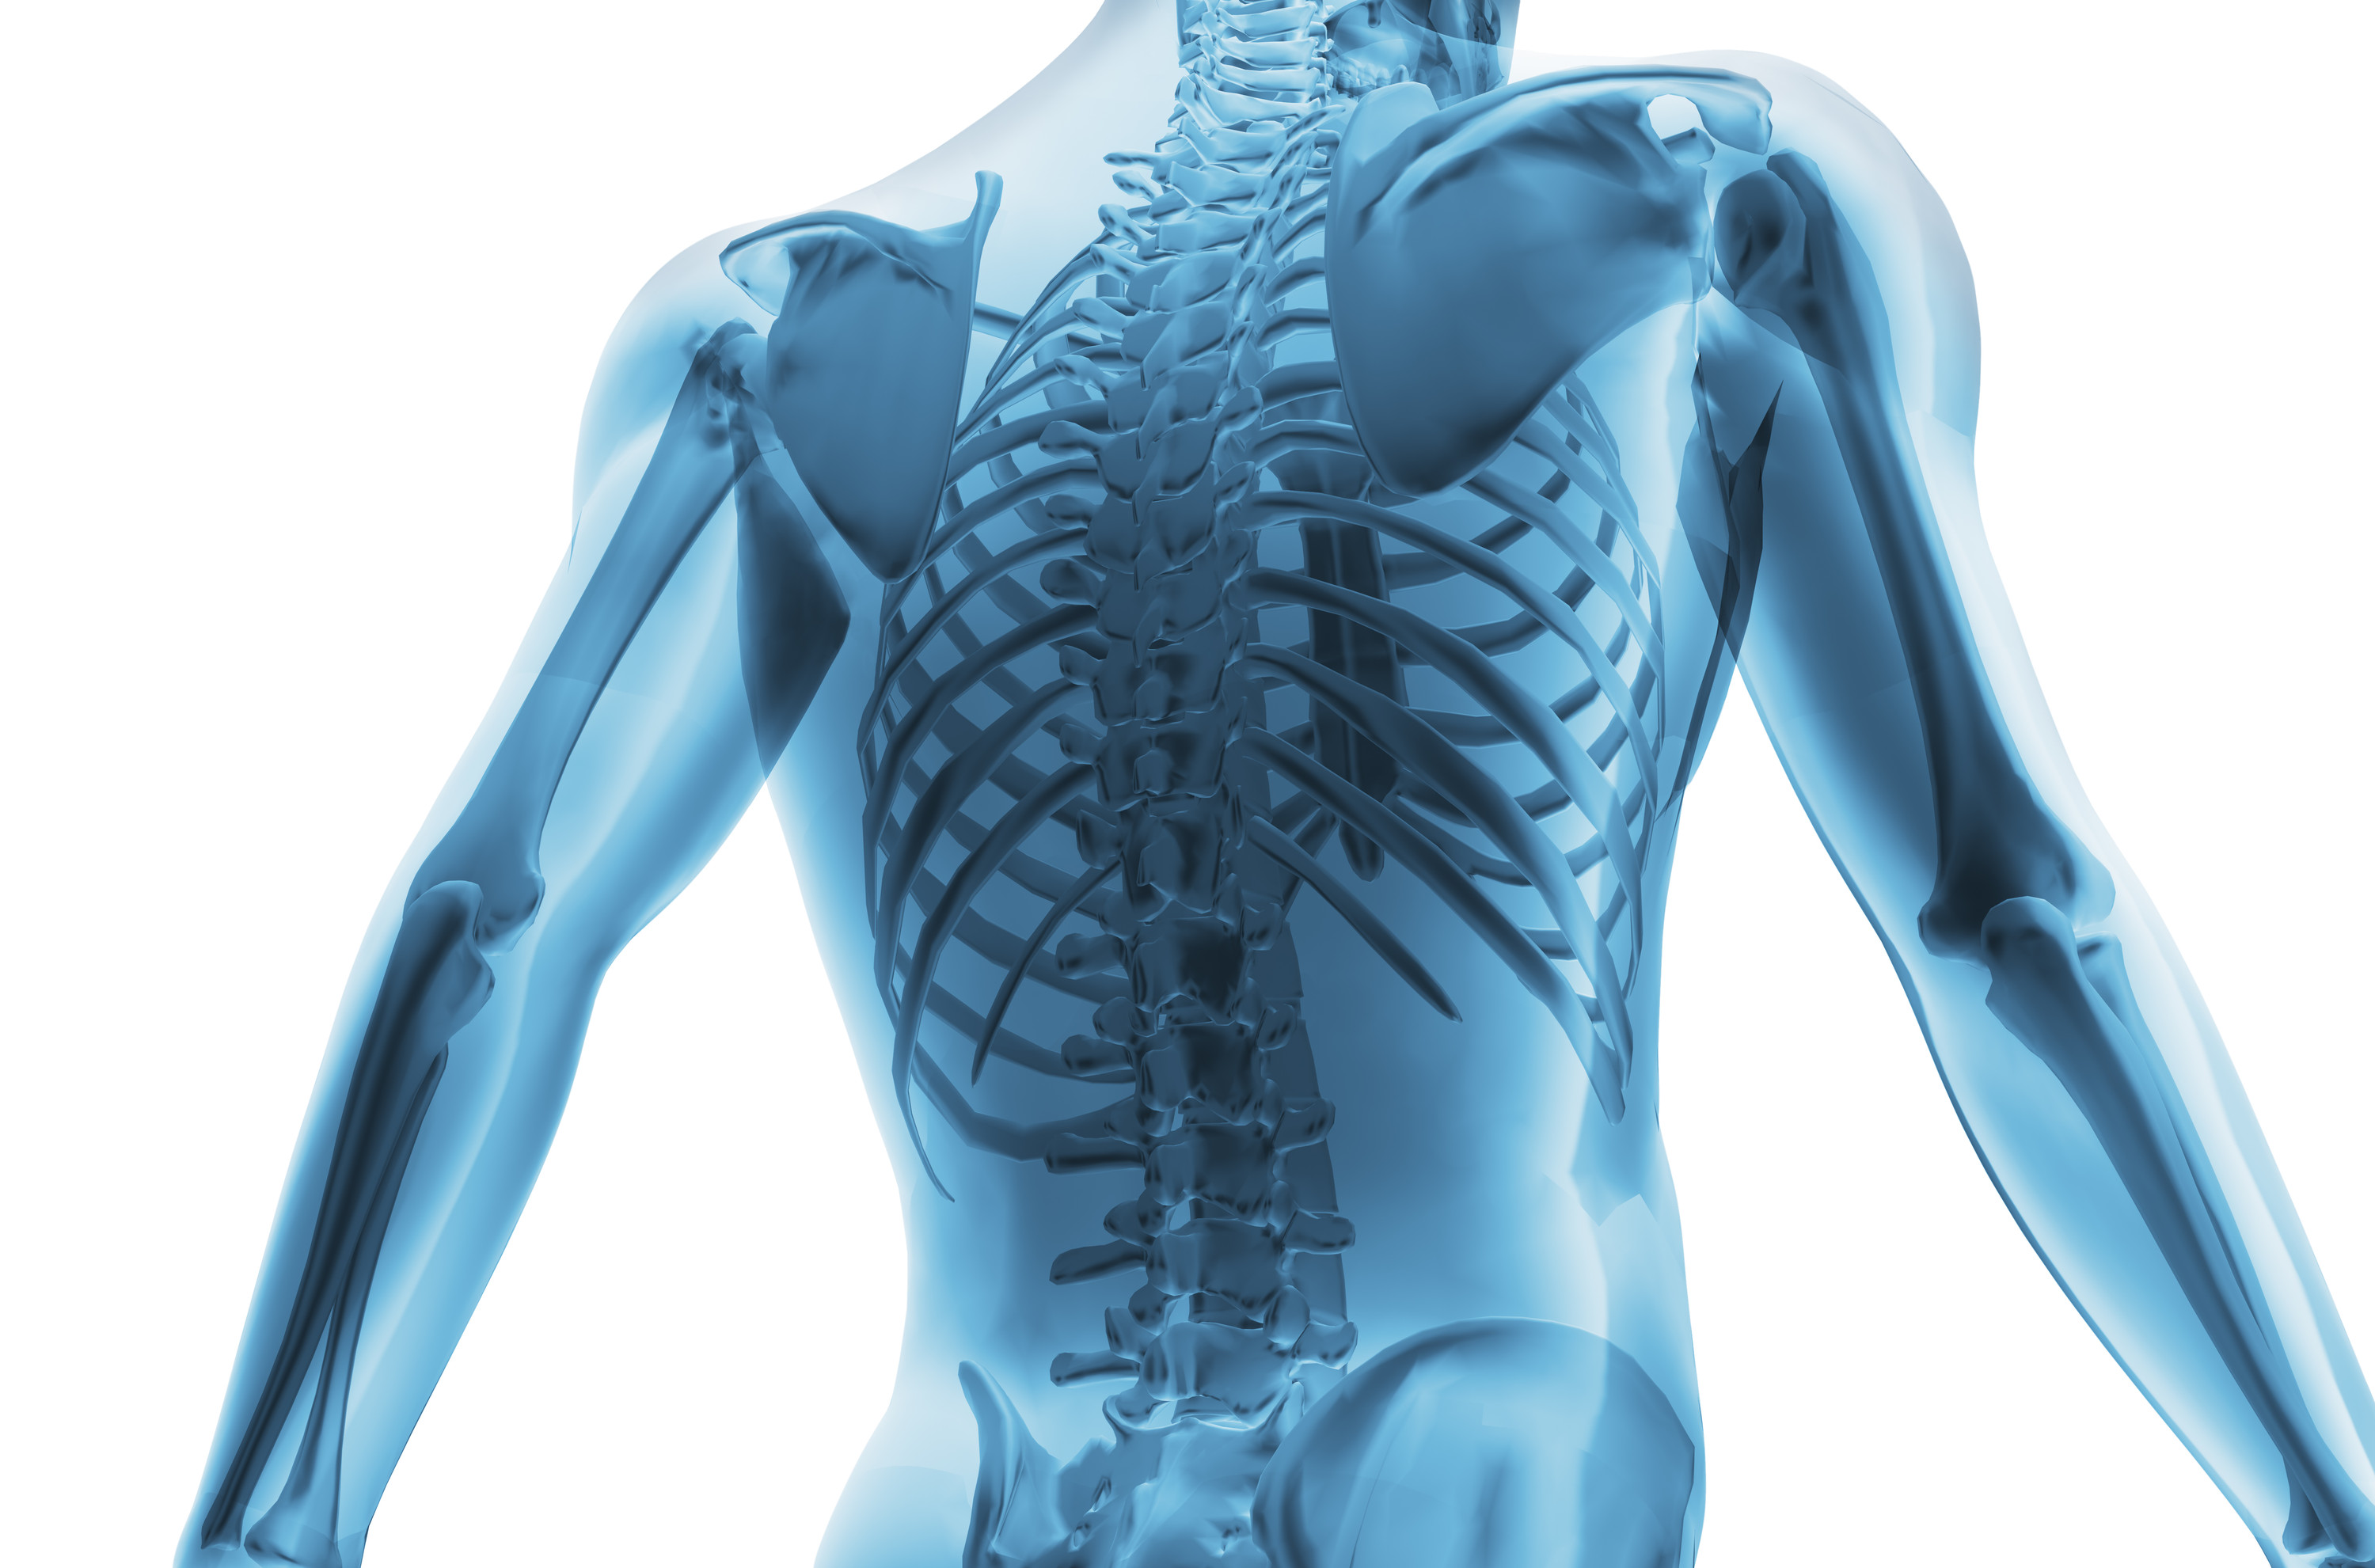 Video The Skeletal System Its Structure And Function